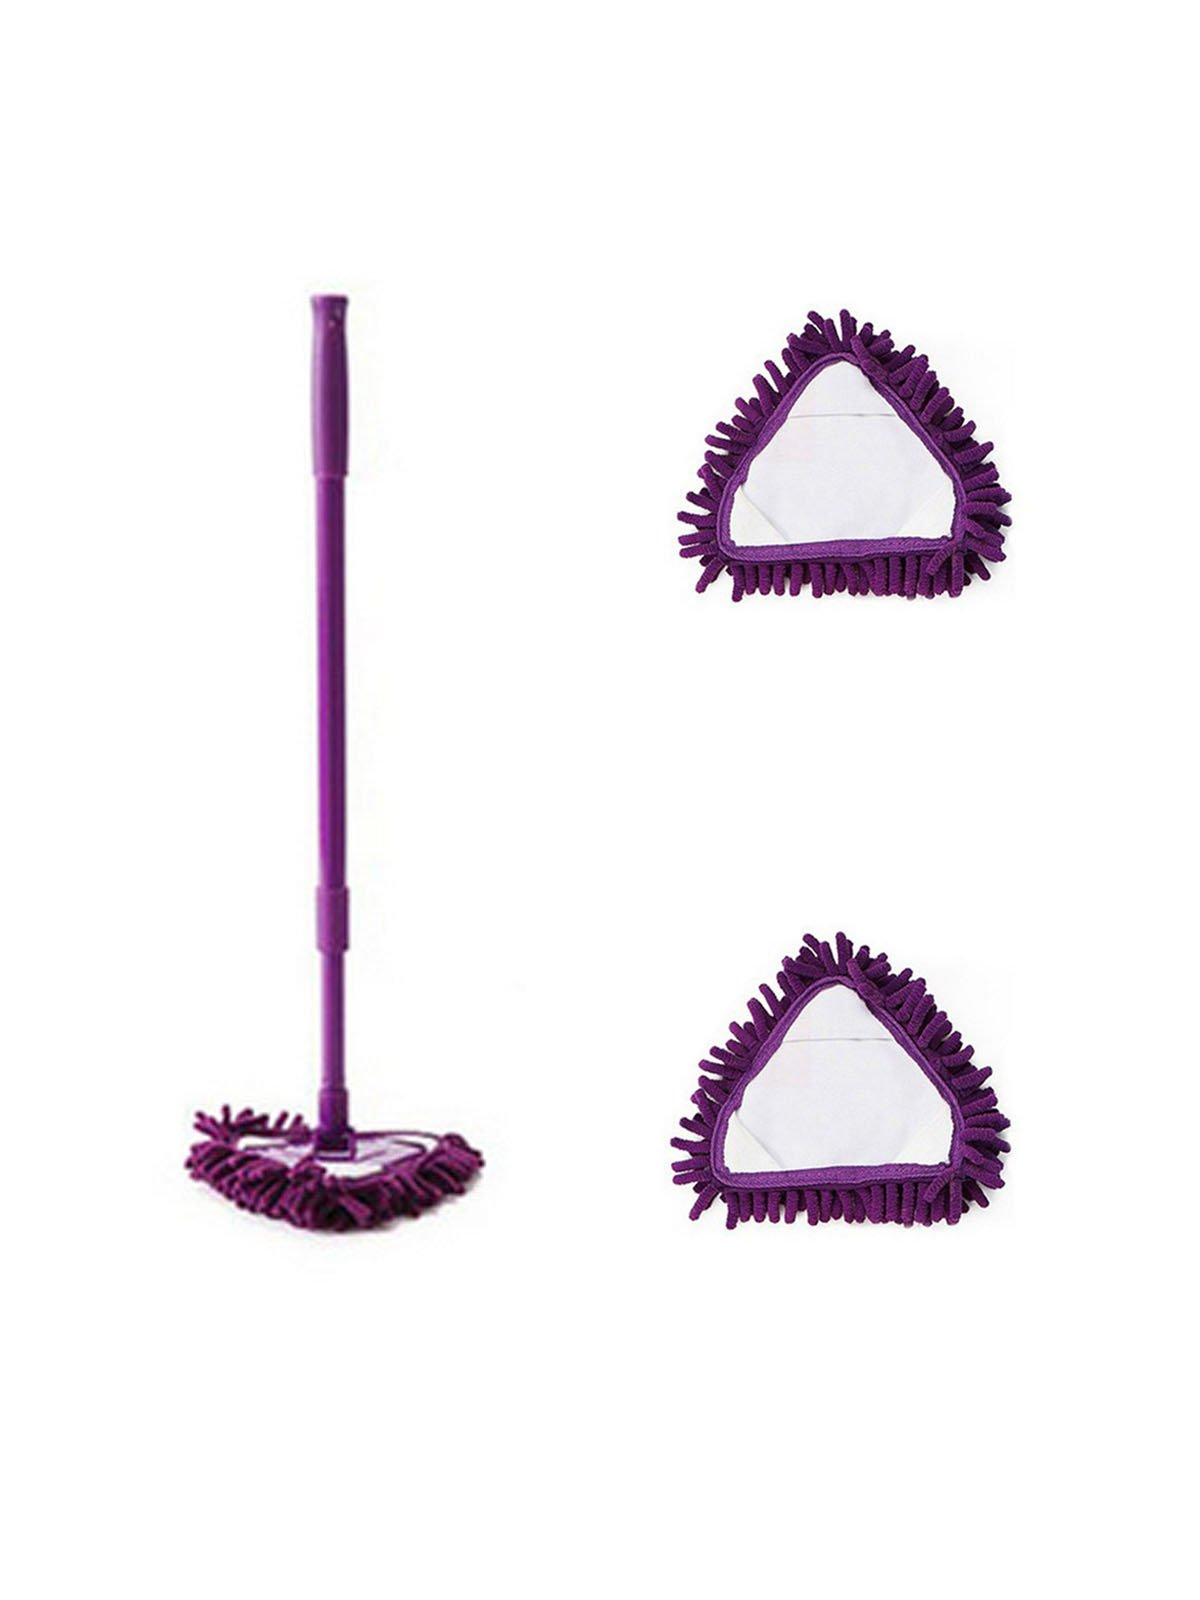 WJL Mini Microfiber Mop,Detachable,360 Degree Rotation,Equipped With 2PCS Replacement Mop Cloth